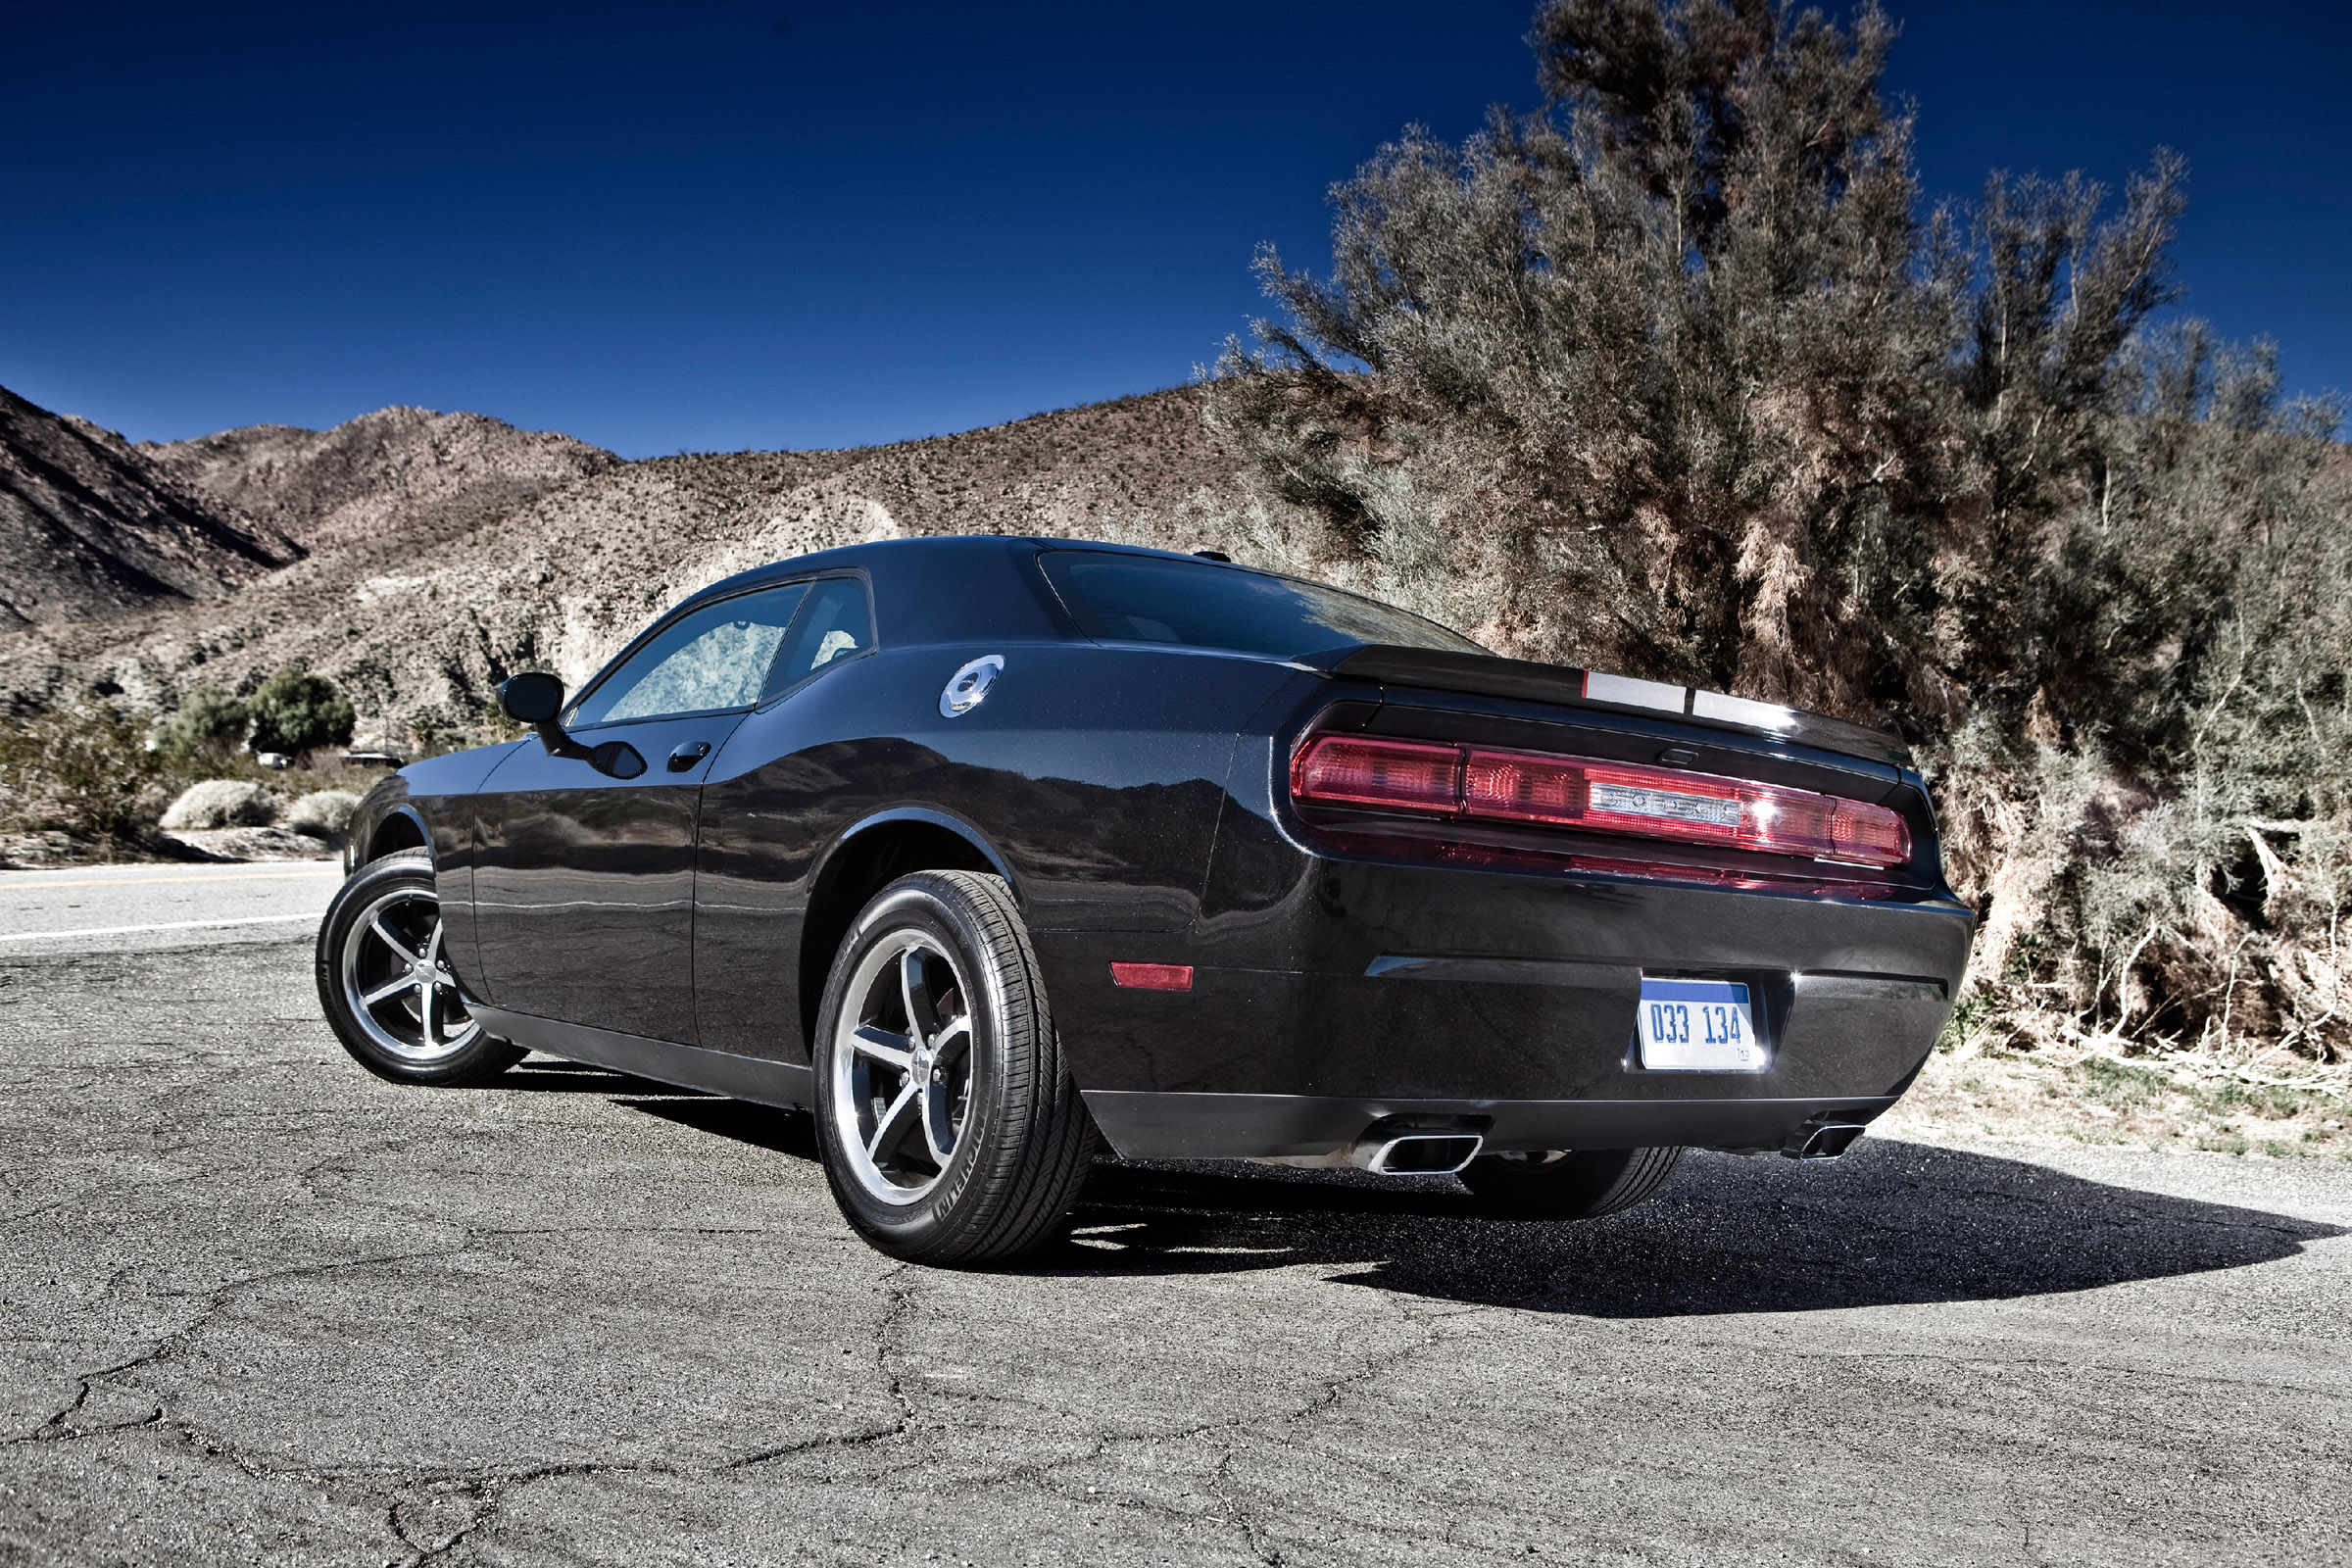 2011 Dodge Challenger Rt Picture 59781